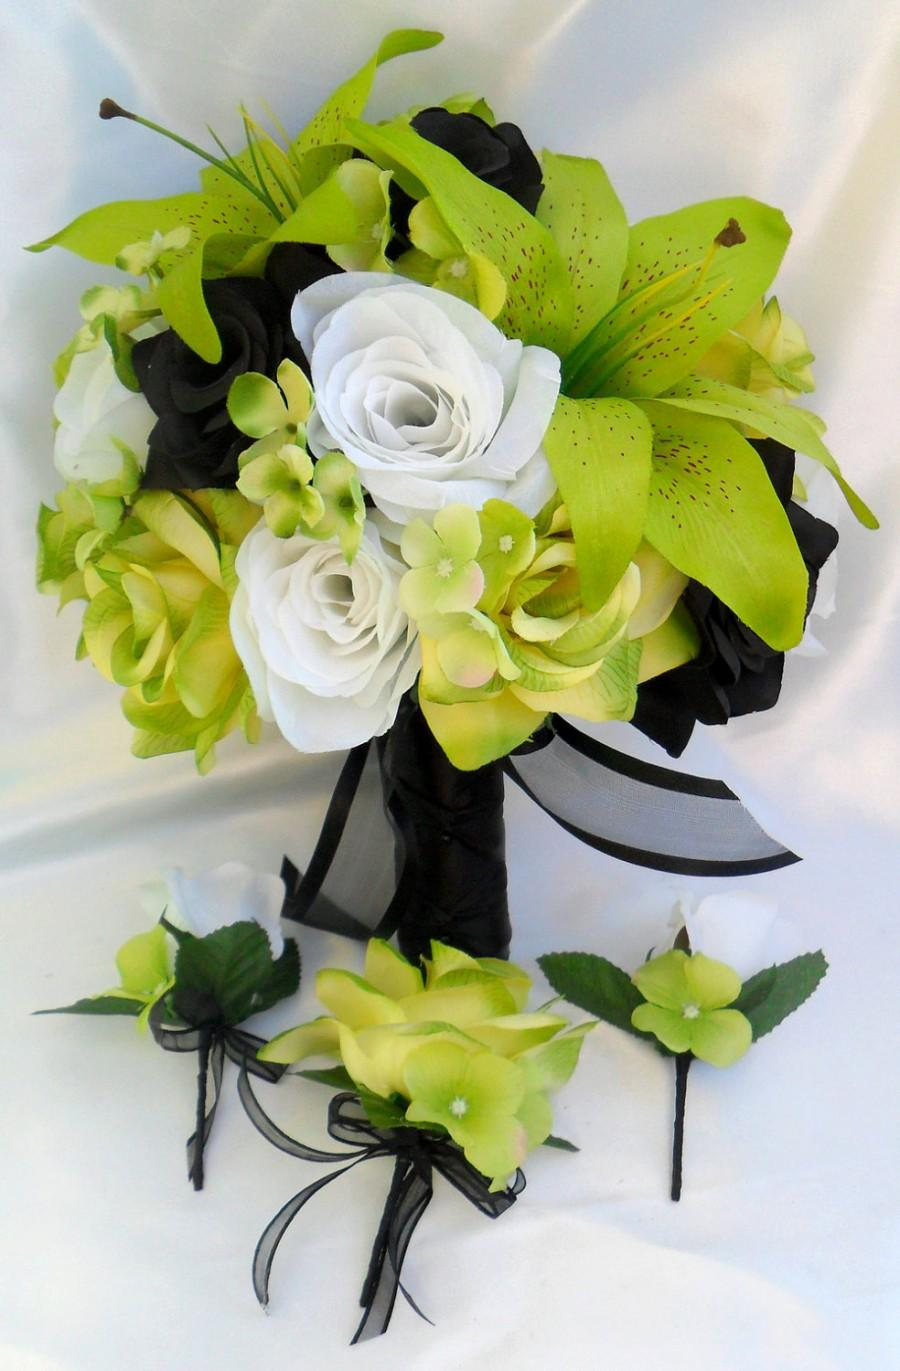 """Mariage - 17 Piece Package Wedding Bridal Bride Maid Bridesmaid Bouquet Boutonniere Corsage Silk Flower WHITE BLACK GREEN """"Lily Of Angeles"""" GRBK01"""